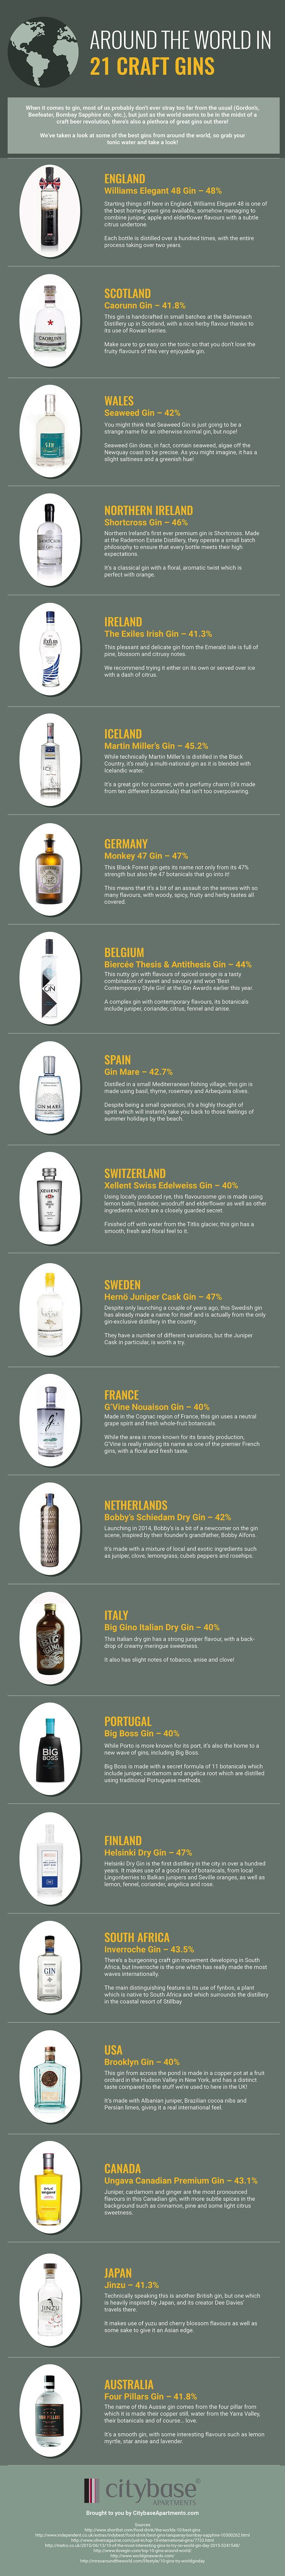 One for all the Gin drinkers out there: Around the world in 21 craft Gins